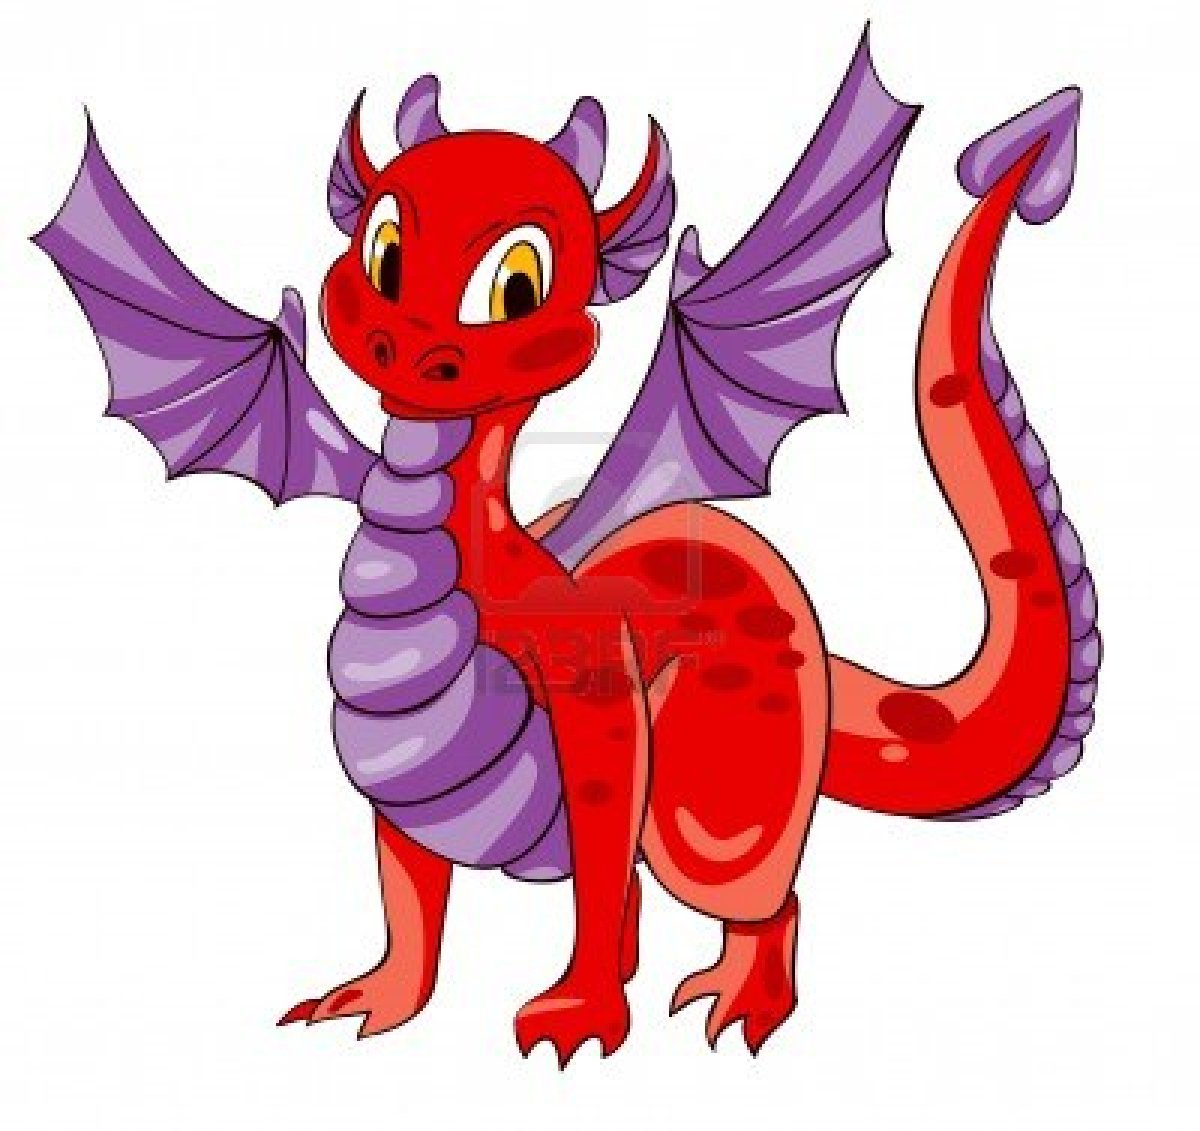 Dessins en couleurs imprimer dragon num ro 230183 - Dessin dragon couleur ...